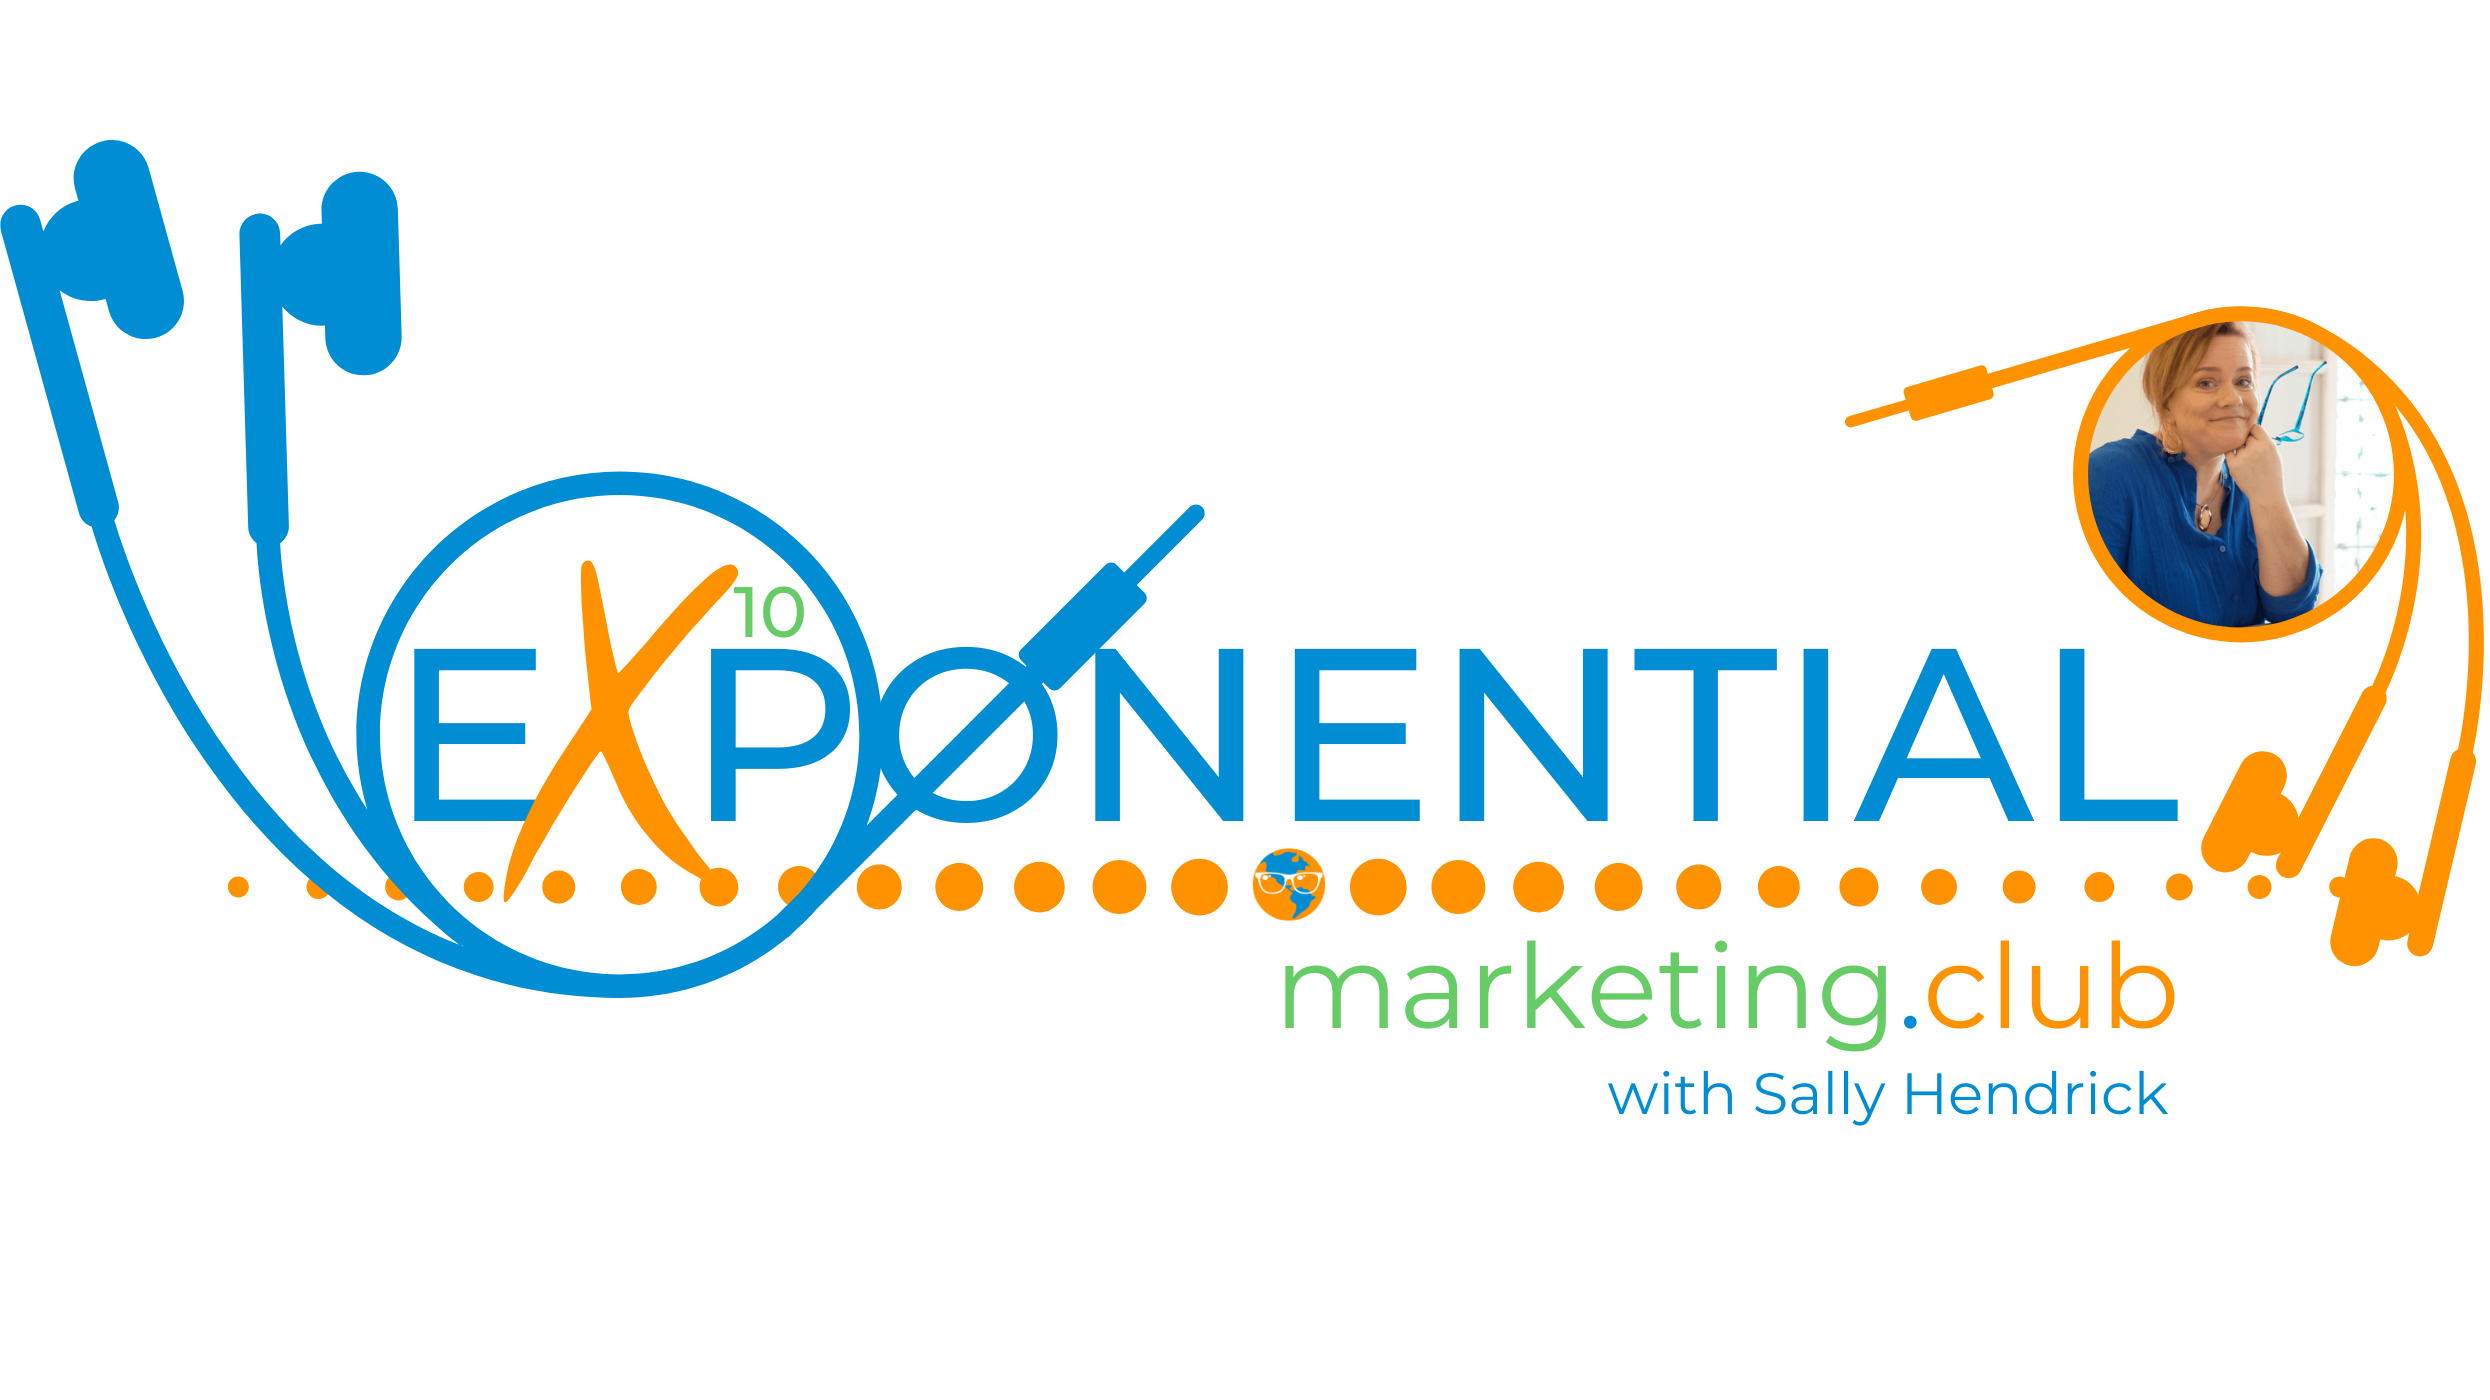 Exponential Marketing Club with Sally Hendrick